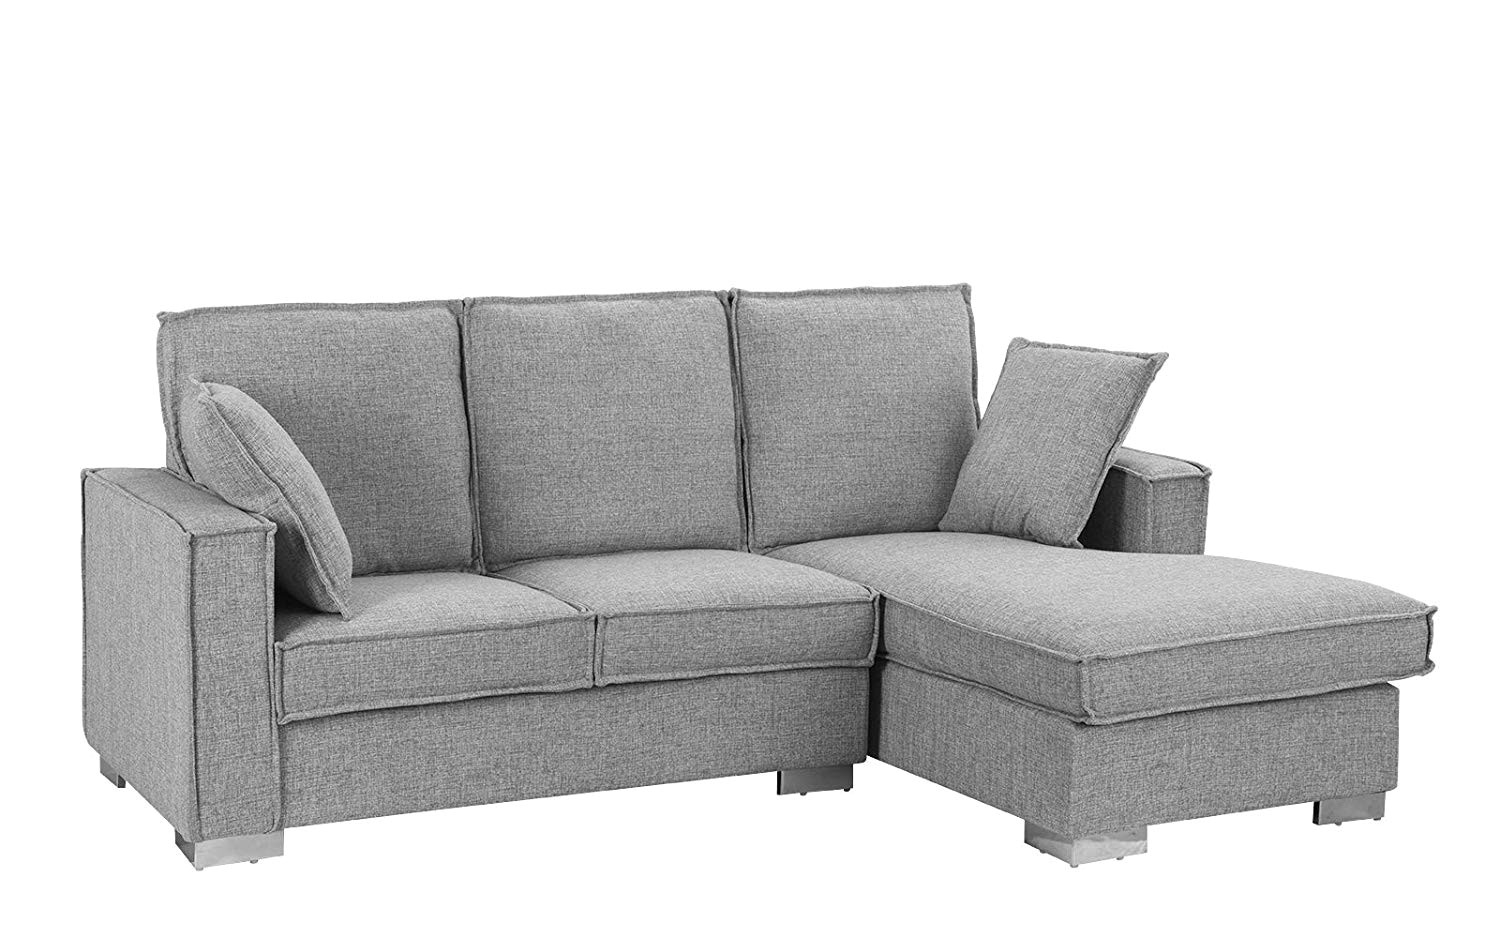 amazon com classic linen fabric sectional sofa small space l shape couch with chaise light grey kitchen dining